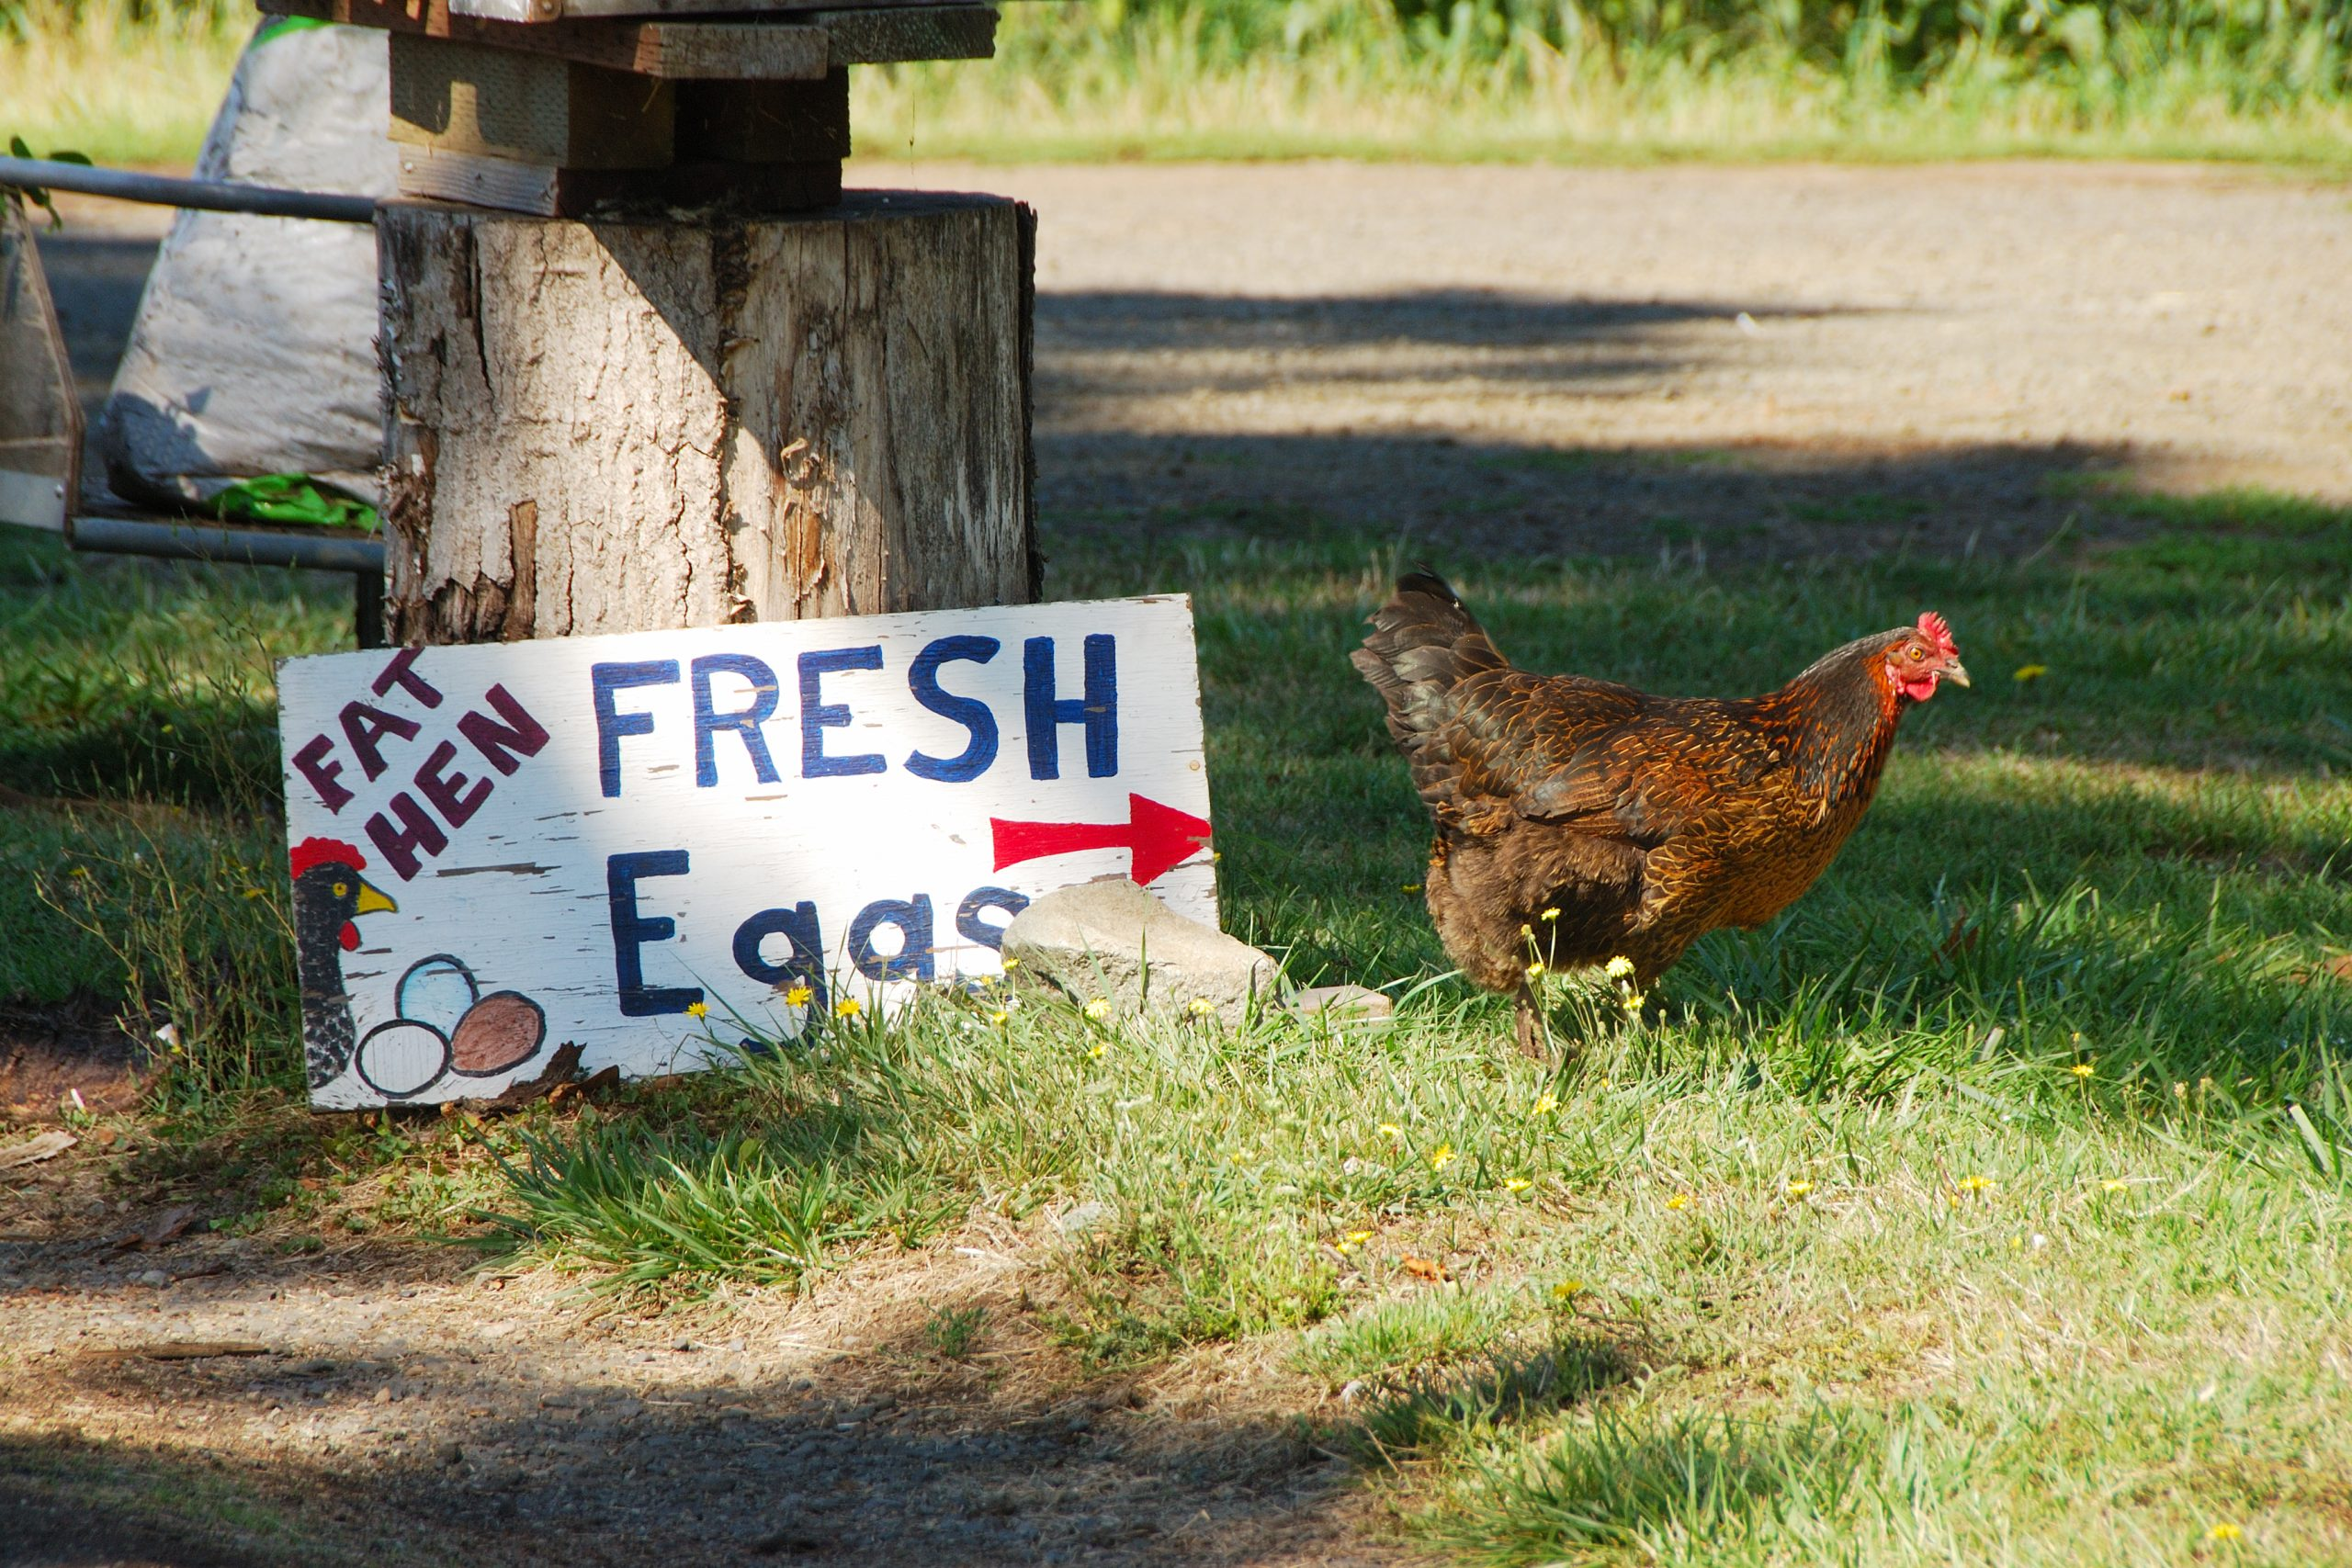 Fresh eggs for sale sign with chicken standing next to it